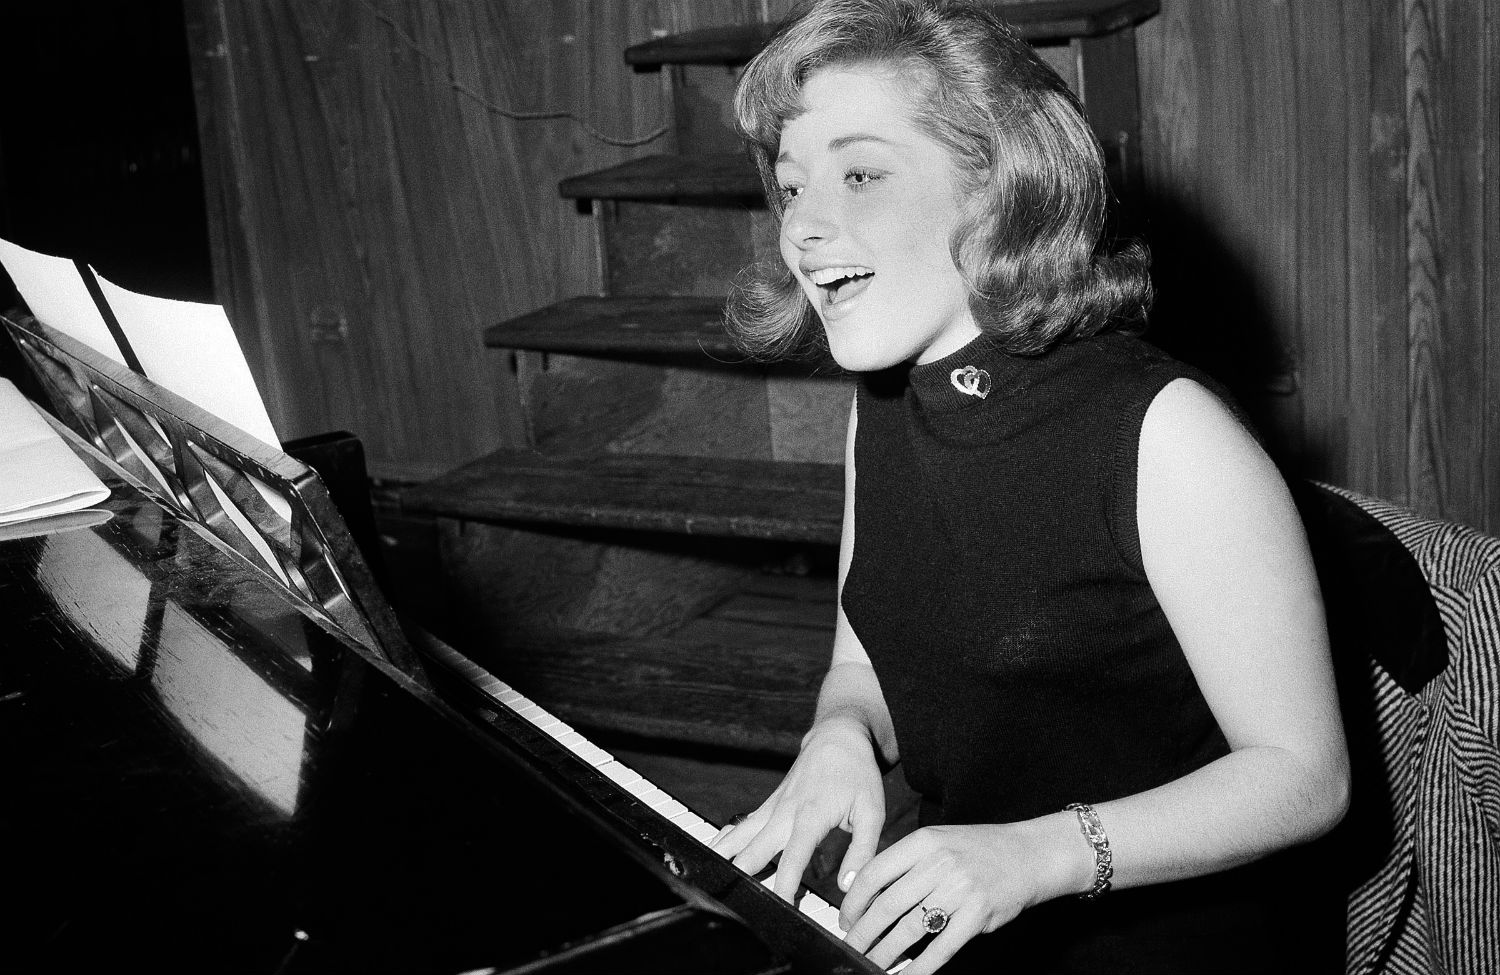 Lesley-Gore-at-Piano